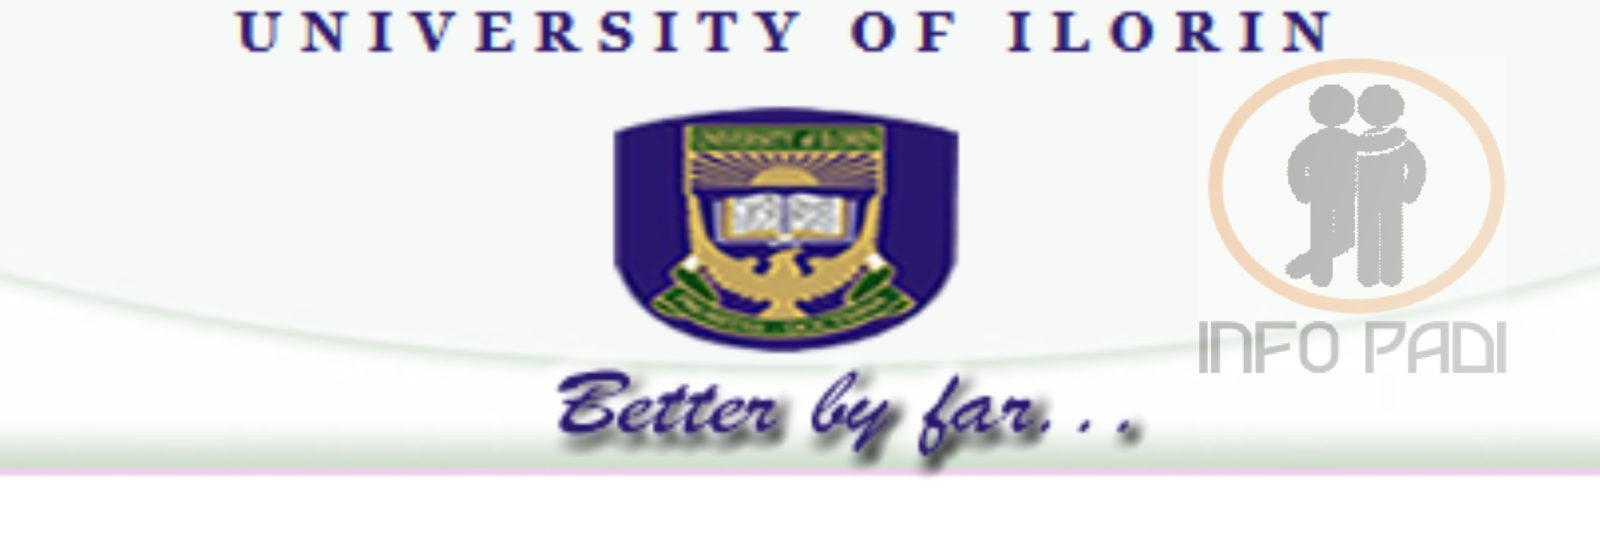 University of Ilorin (Uni-Ilorin) Post UTME 2018/2019 Admission Screening form